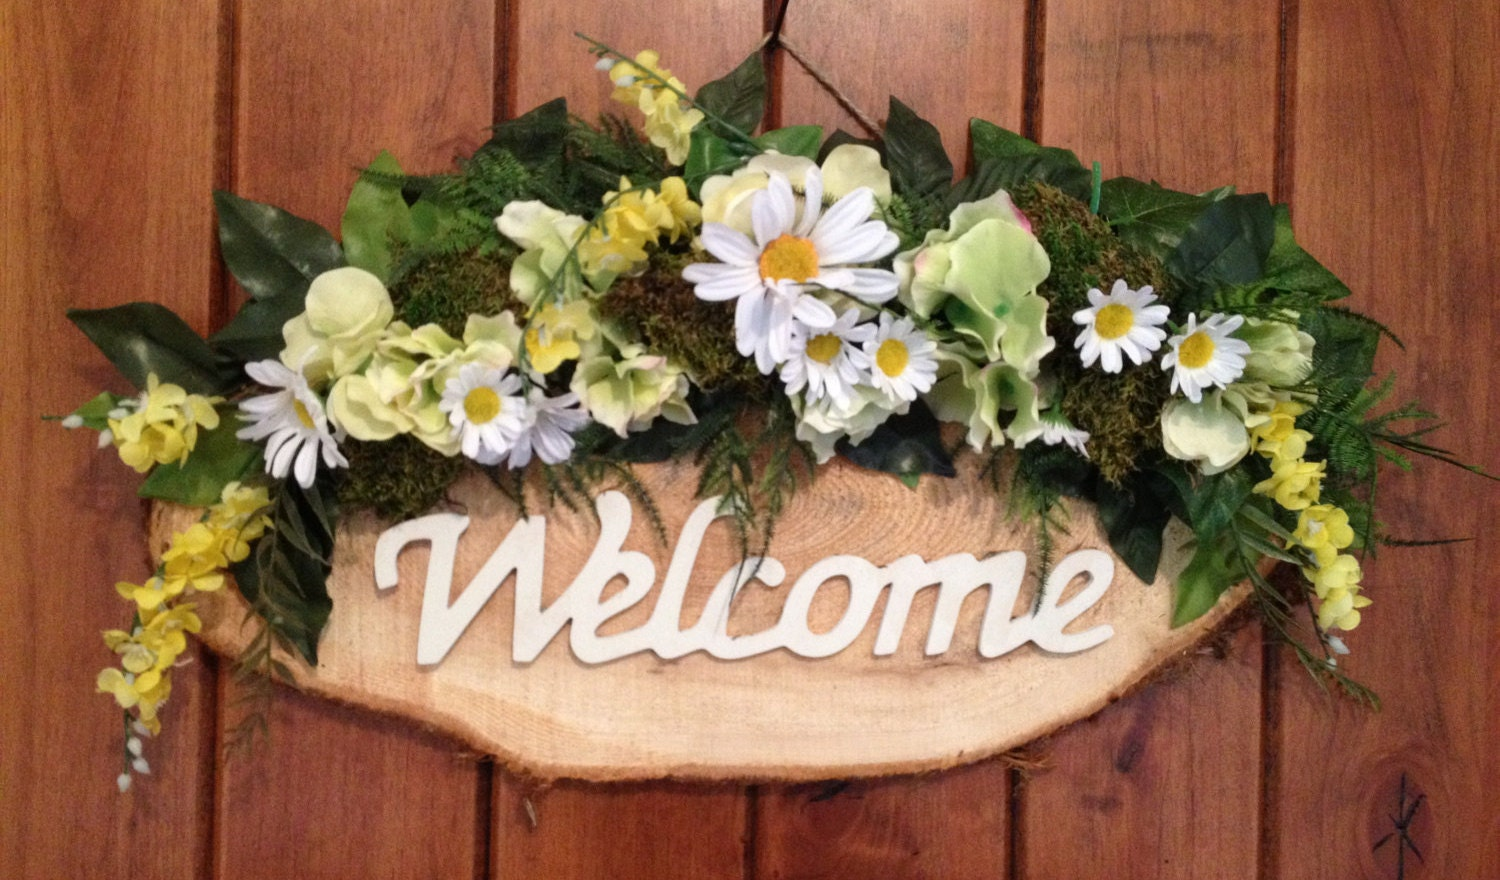 Welcome Sign Decorated With Flowers Door Decor Front Door. Consolidated Loan Rates Trinity Safety Supply. Masters Programs Without Gre. Car Dealers In Akron Ohio Free Pos Restaurant. Small Business Tax Software Reviews. Lower Back Pain Leg Weakness Assault Iv Dv. Mobile Ecommerce Platform Contact Master Card. Acls Recertification Aha Web Design Companies. Child Custody Attorneys Auto Quote Calculator